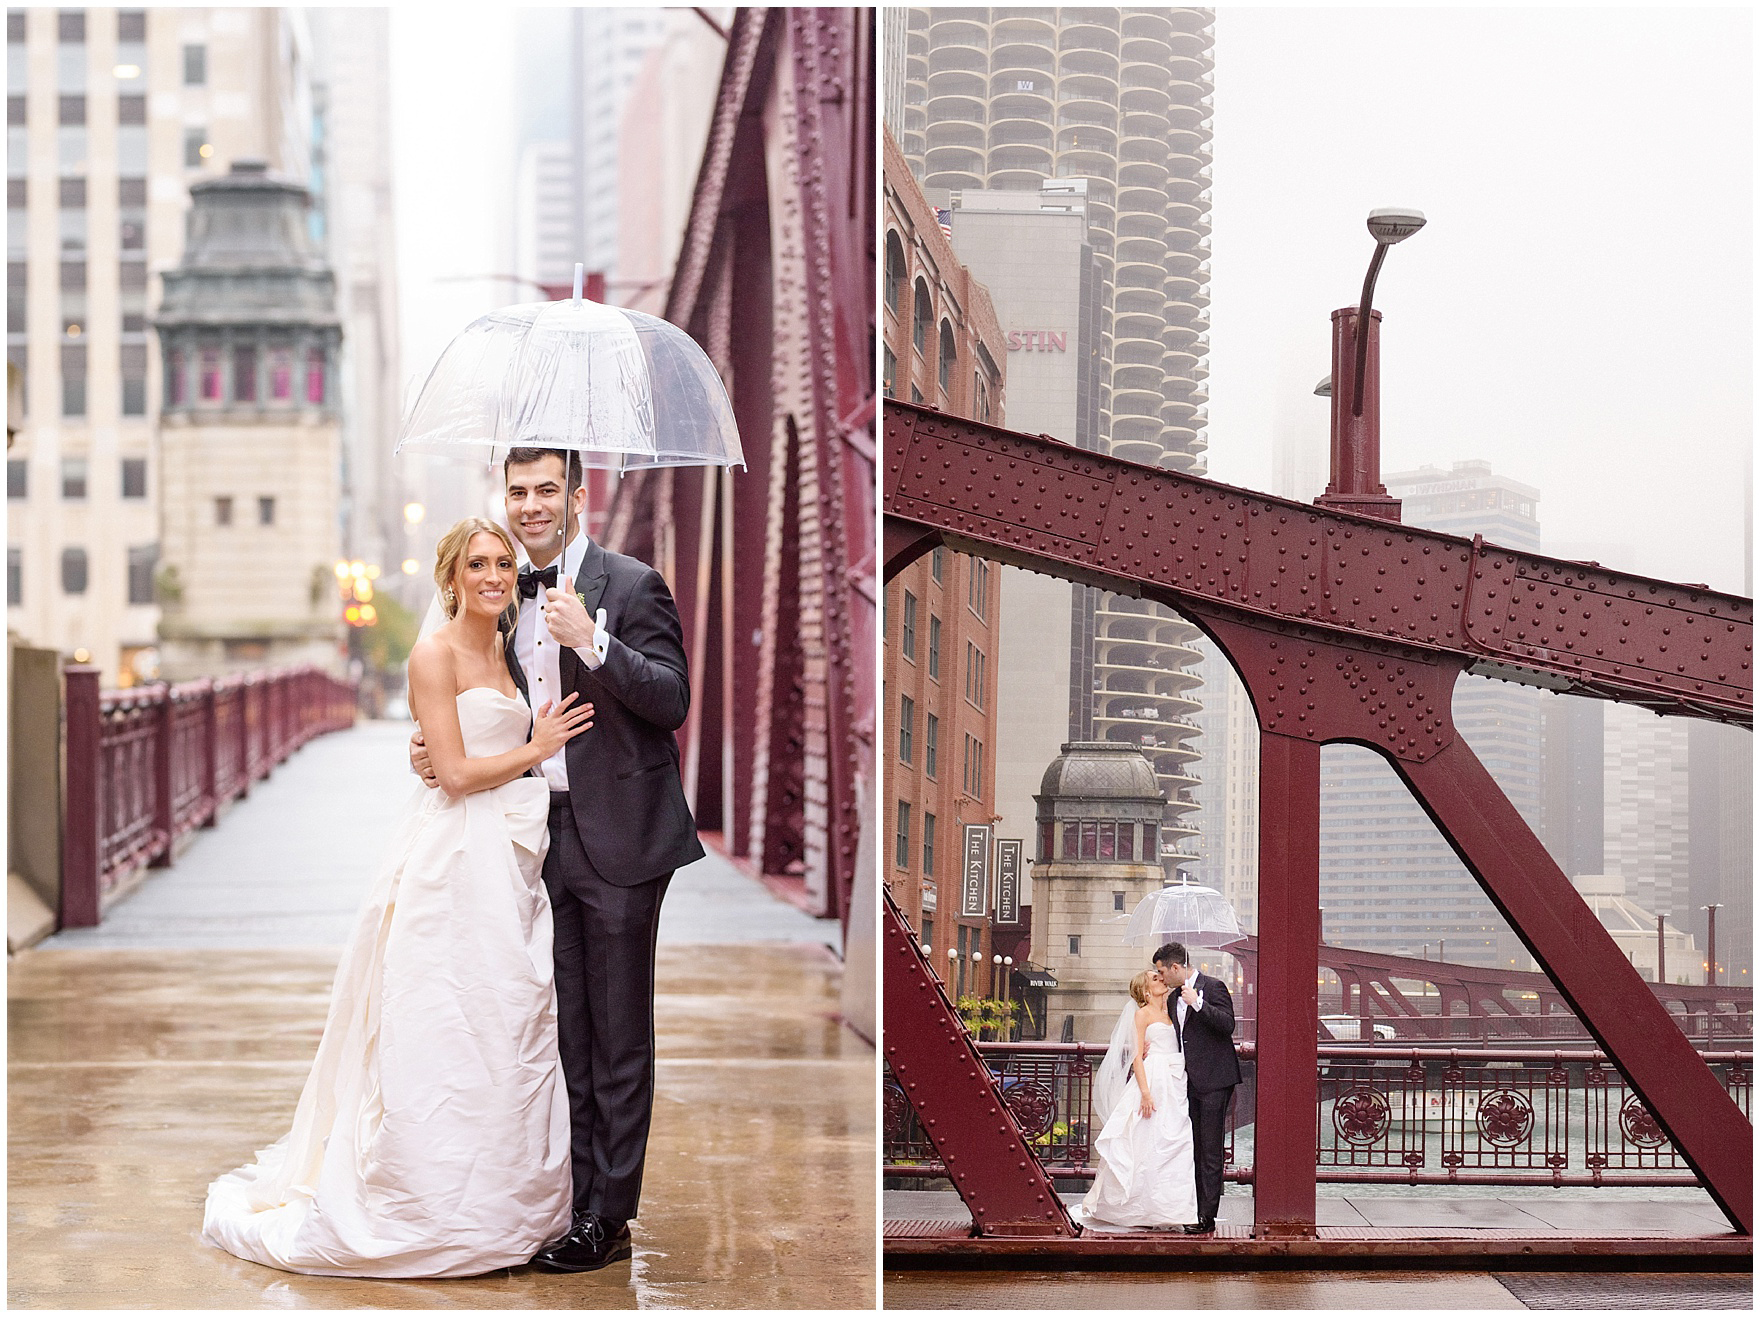 The bride and groom pose under an umbrella on the Clark Street bridge during a St. Clement Germania Place Chicago wedding.